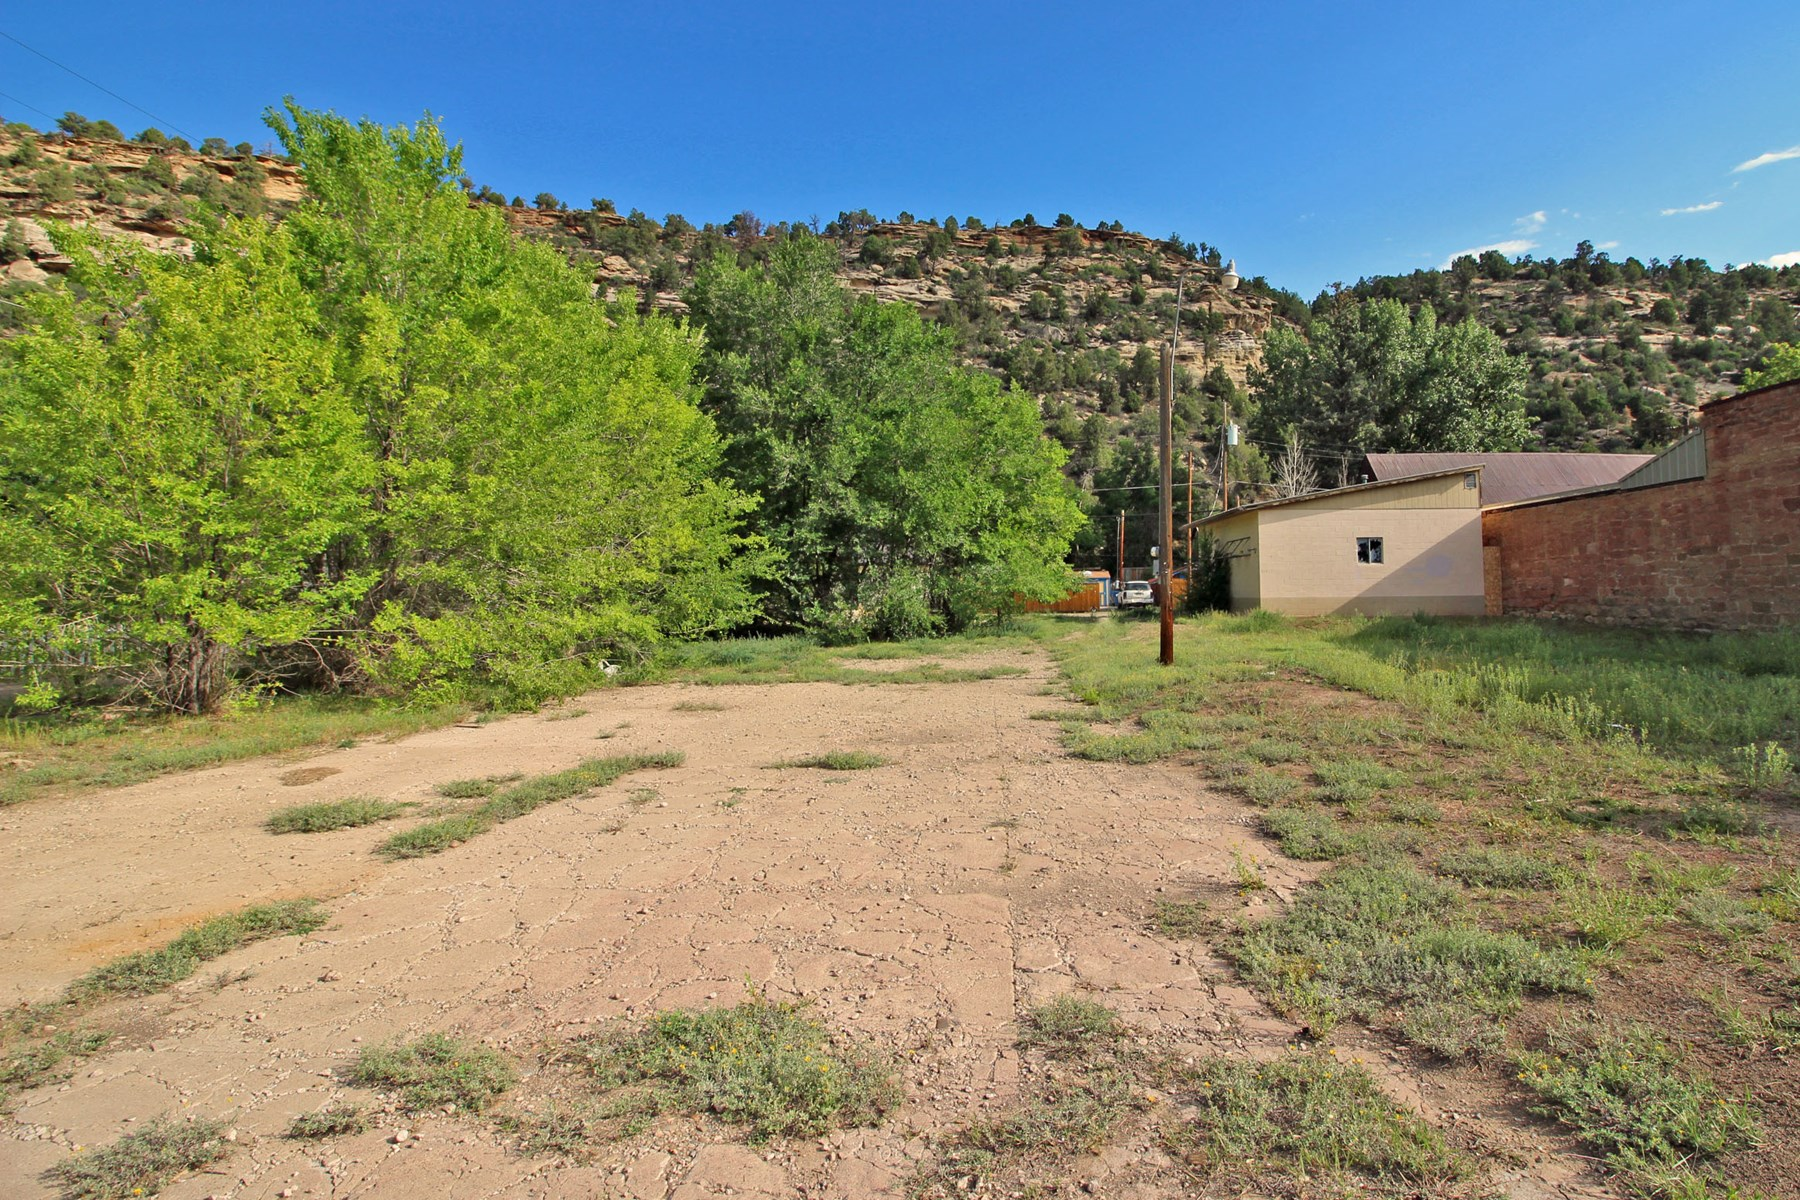 Commercial land with garage for sale in Dolores, Colorado.